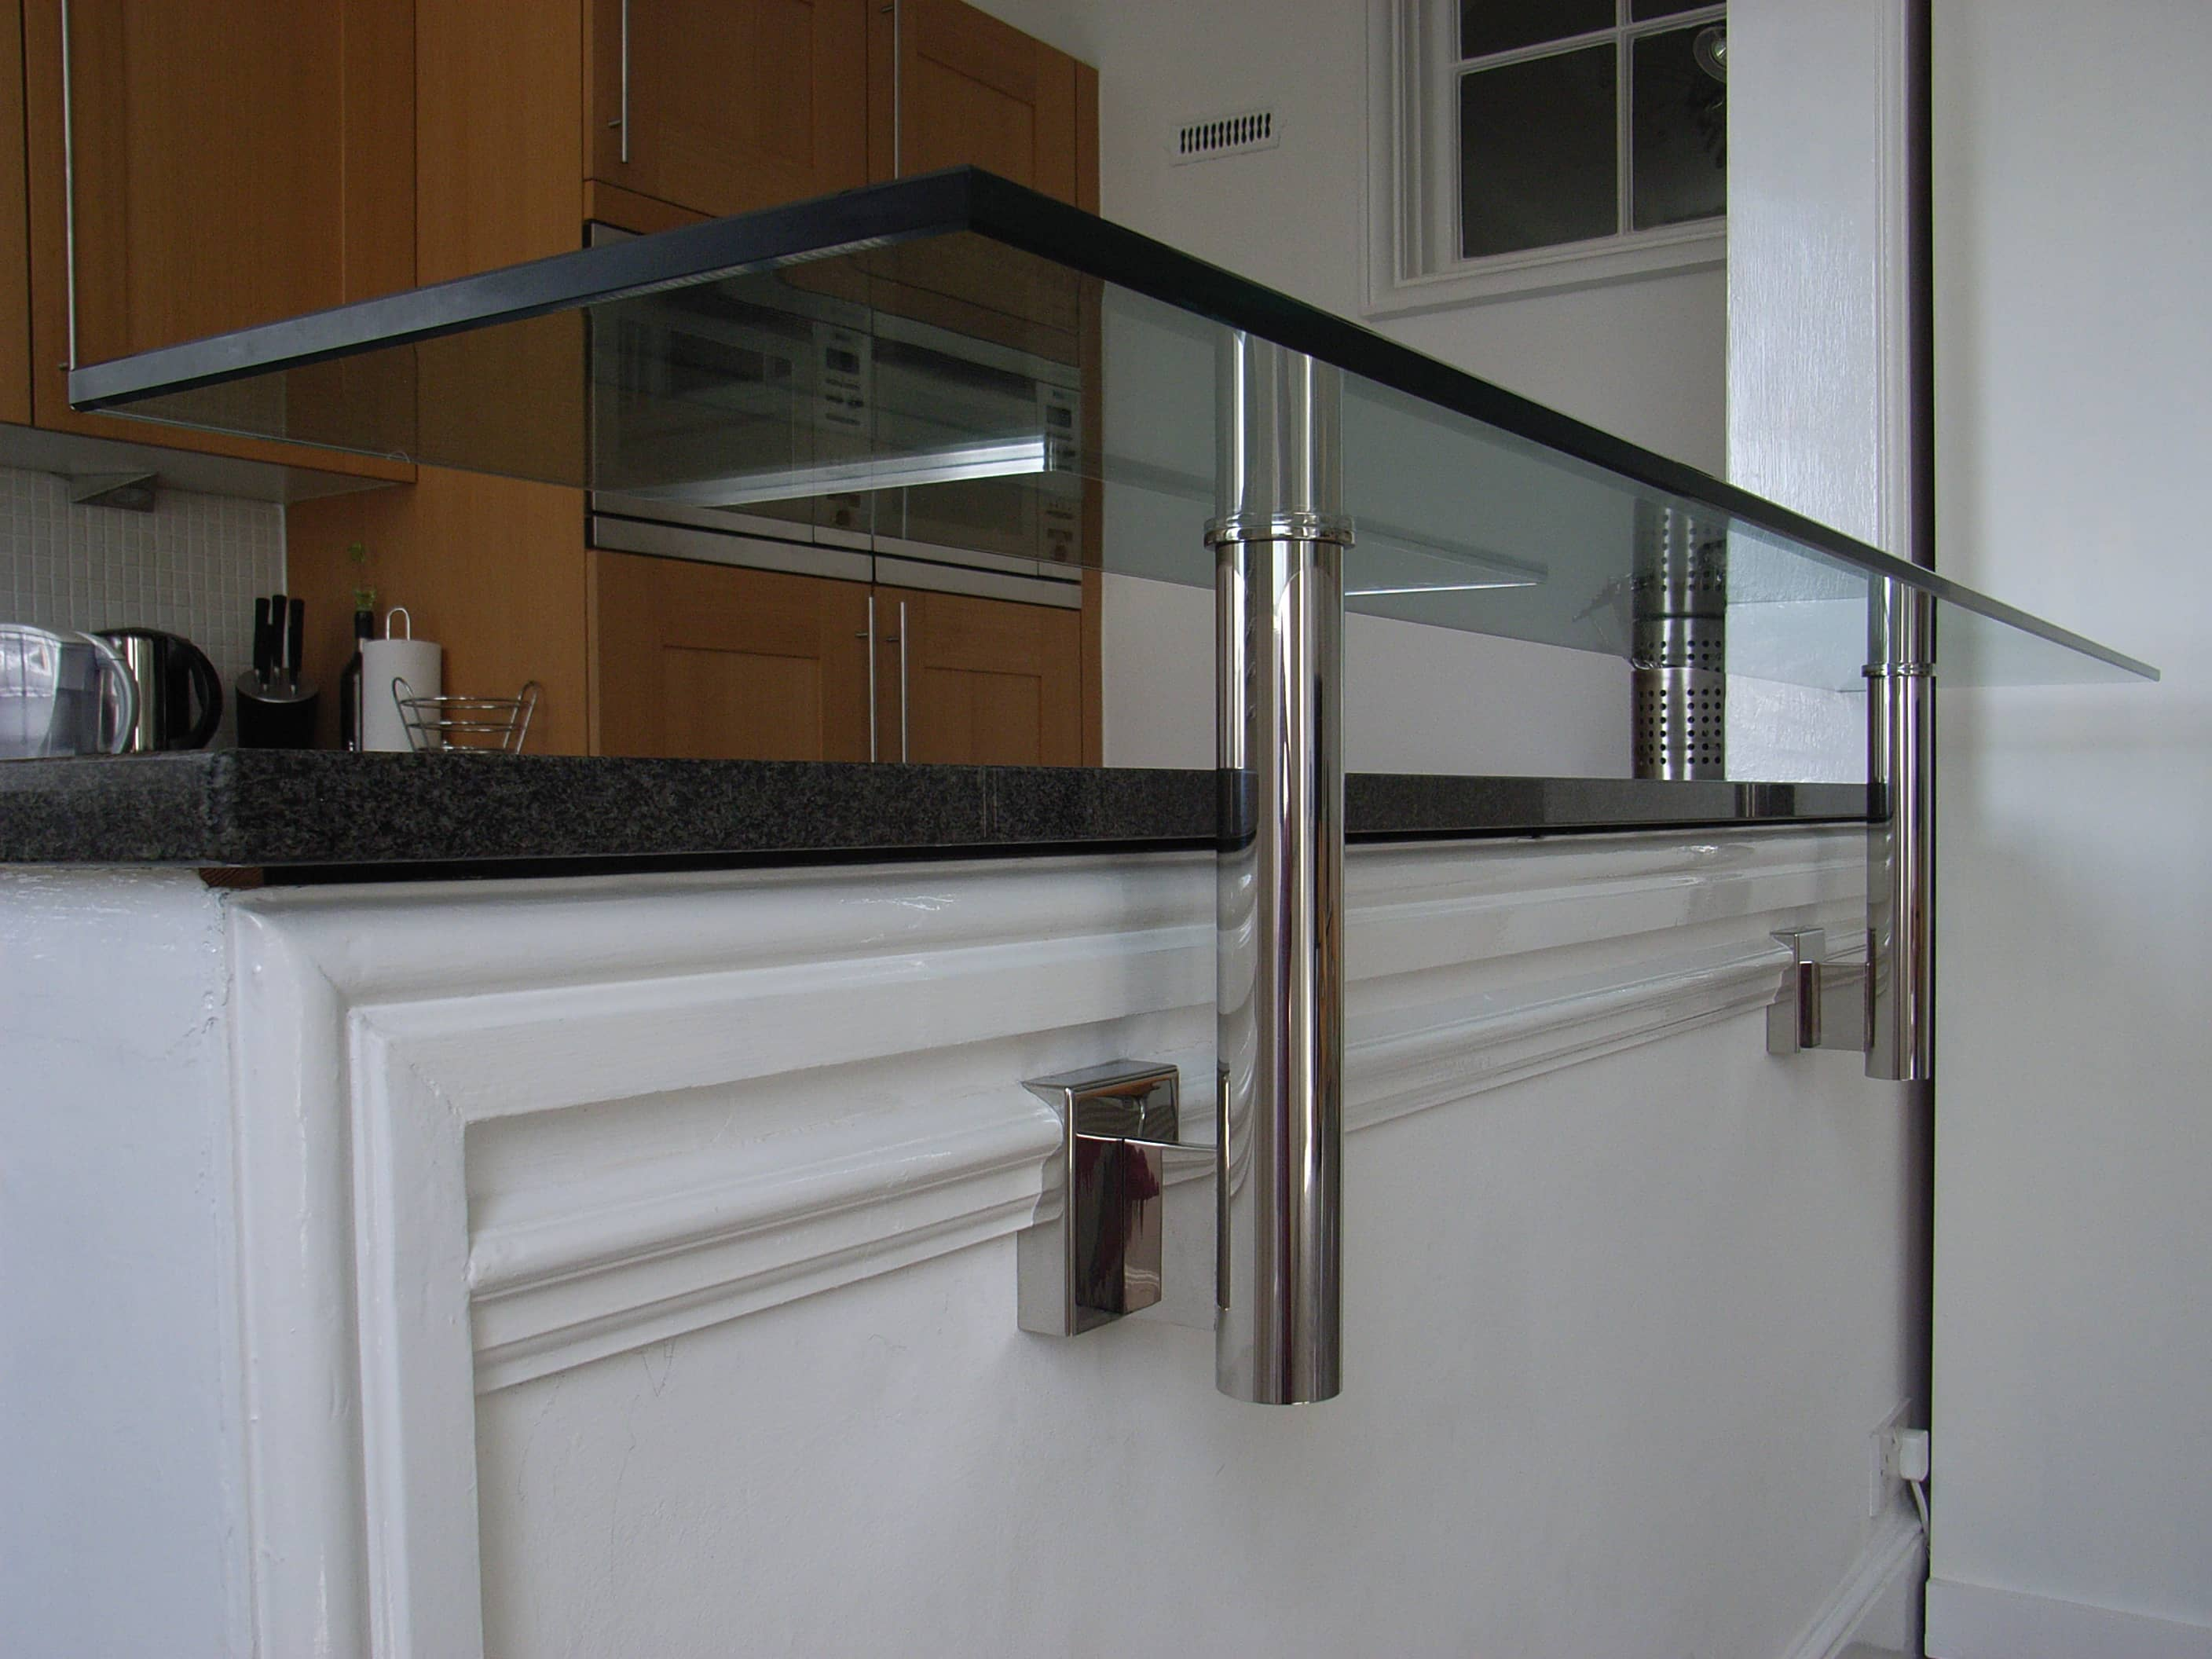 Bespoke products Bespoke glass furniture